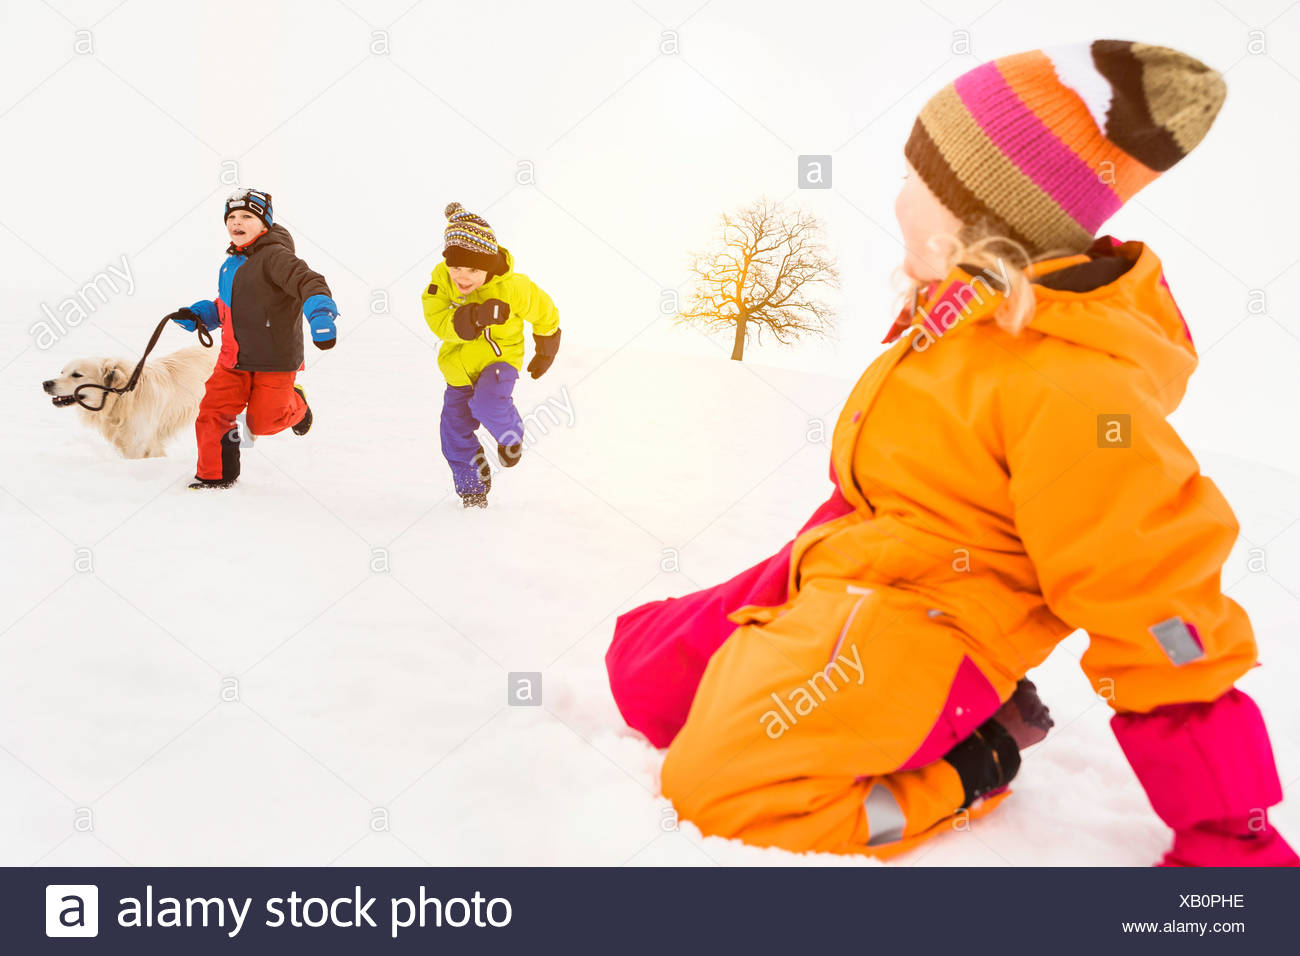 Two boys running in snow with dog, girl kneeling in foreground - Stock Image